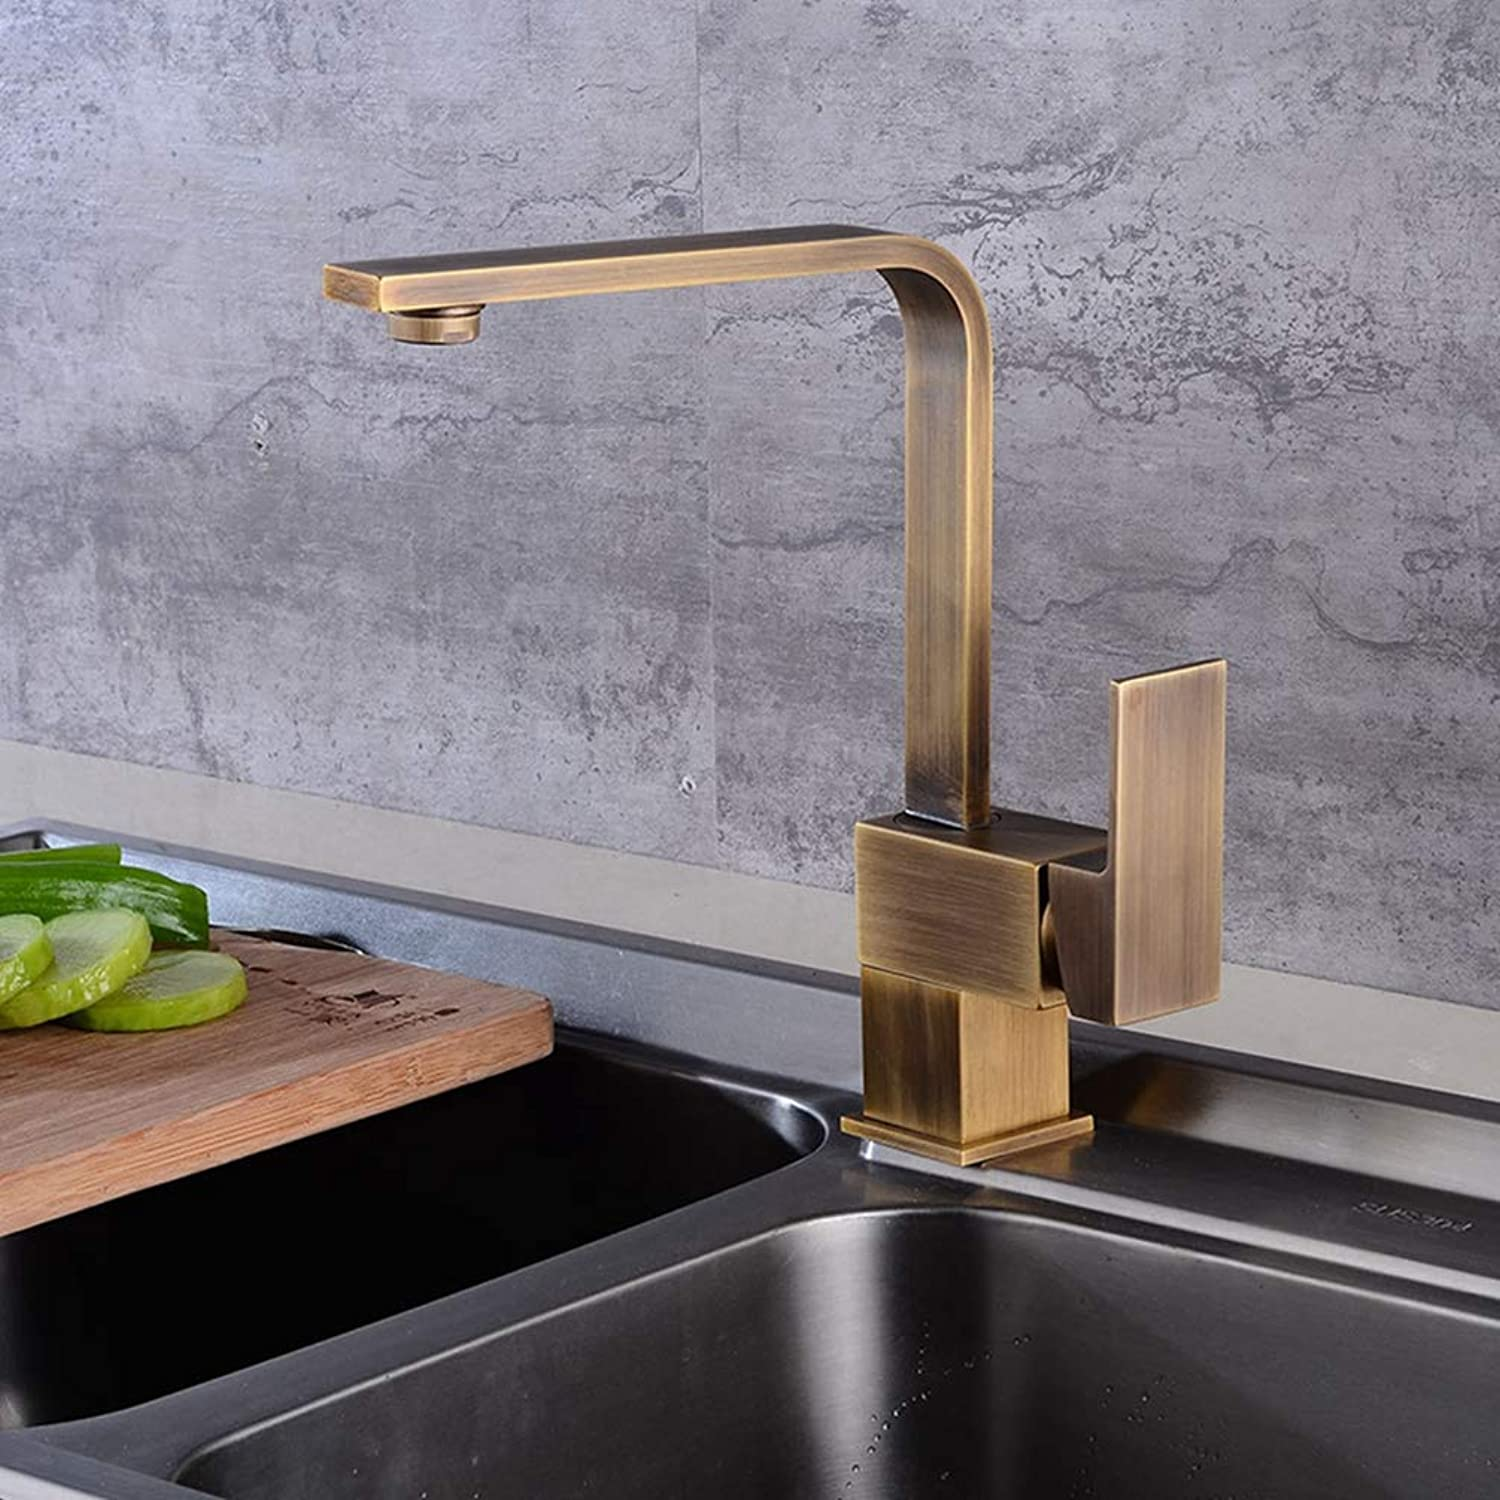 FZHLR Kitchen Sink Faucets Antique Finish Brass Crane Kitchen Faucets Hot Cold Water Mixer Tap Single Hole Mixer Taps torneira